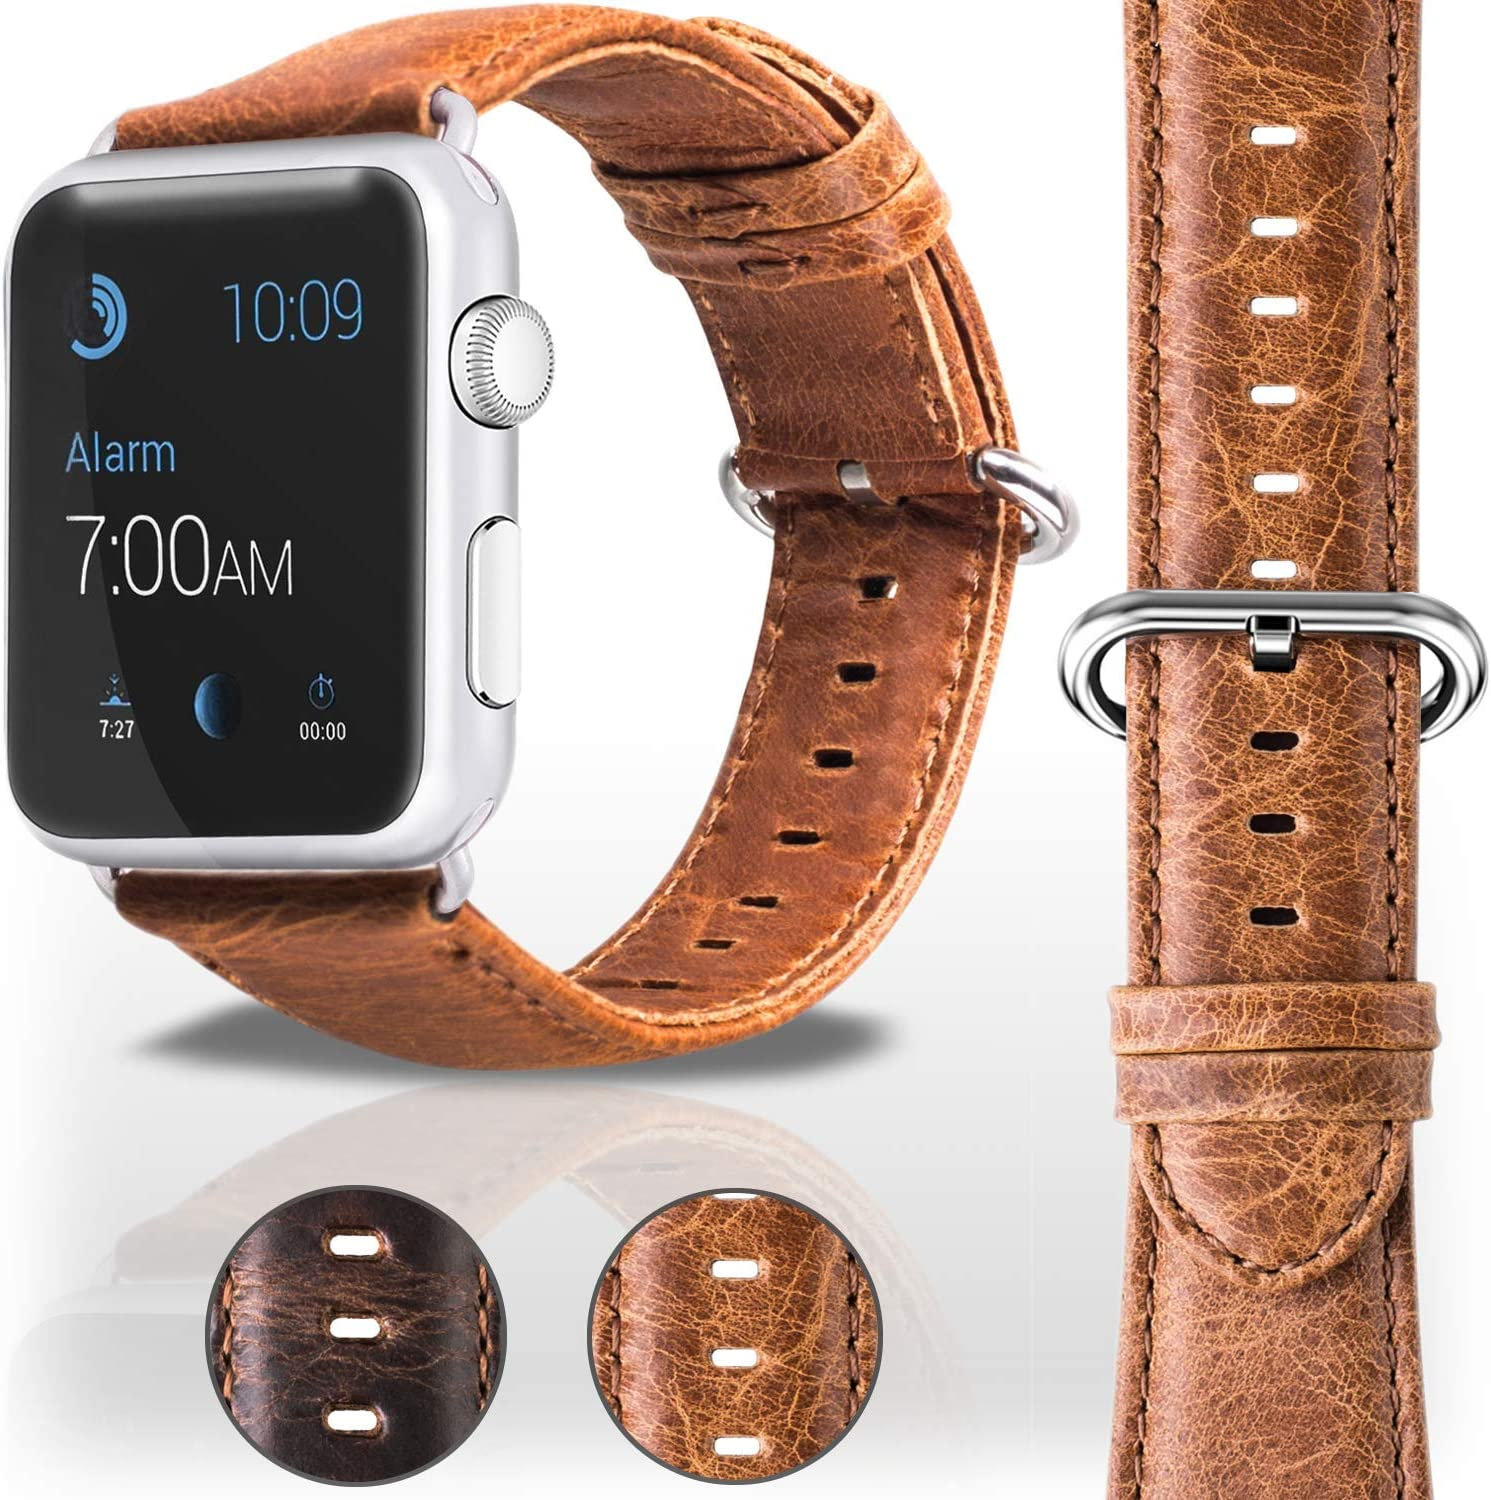 Veracelli compatible with Apple Watch Band 42mm 44mm - Mens Genuine Leather replacement for iWatch Bands - Series 4 Series 3 Series 2 Series 1 Apple Watch Strap - Light Brown